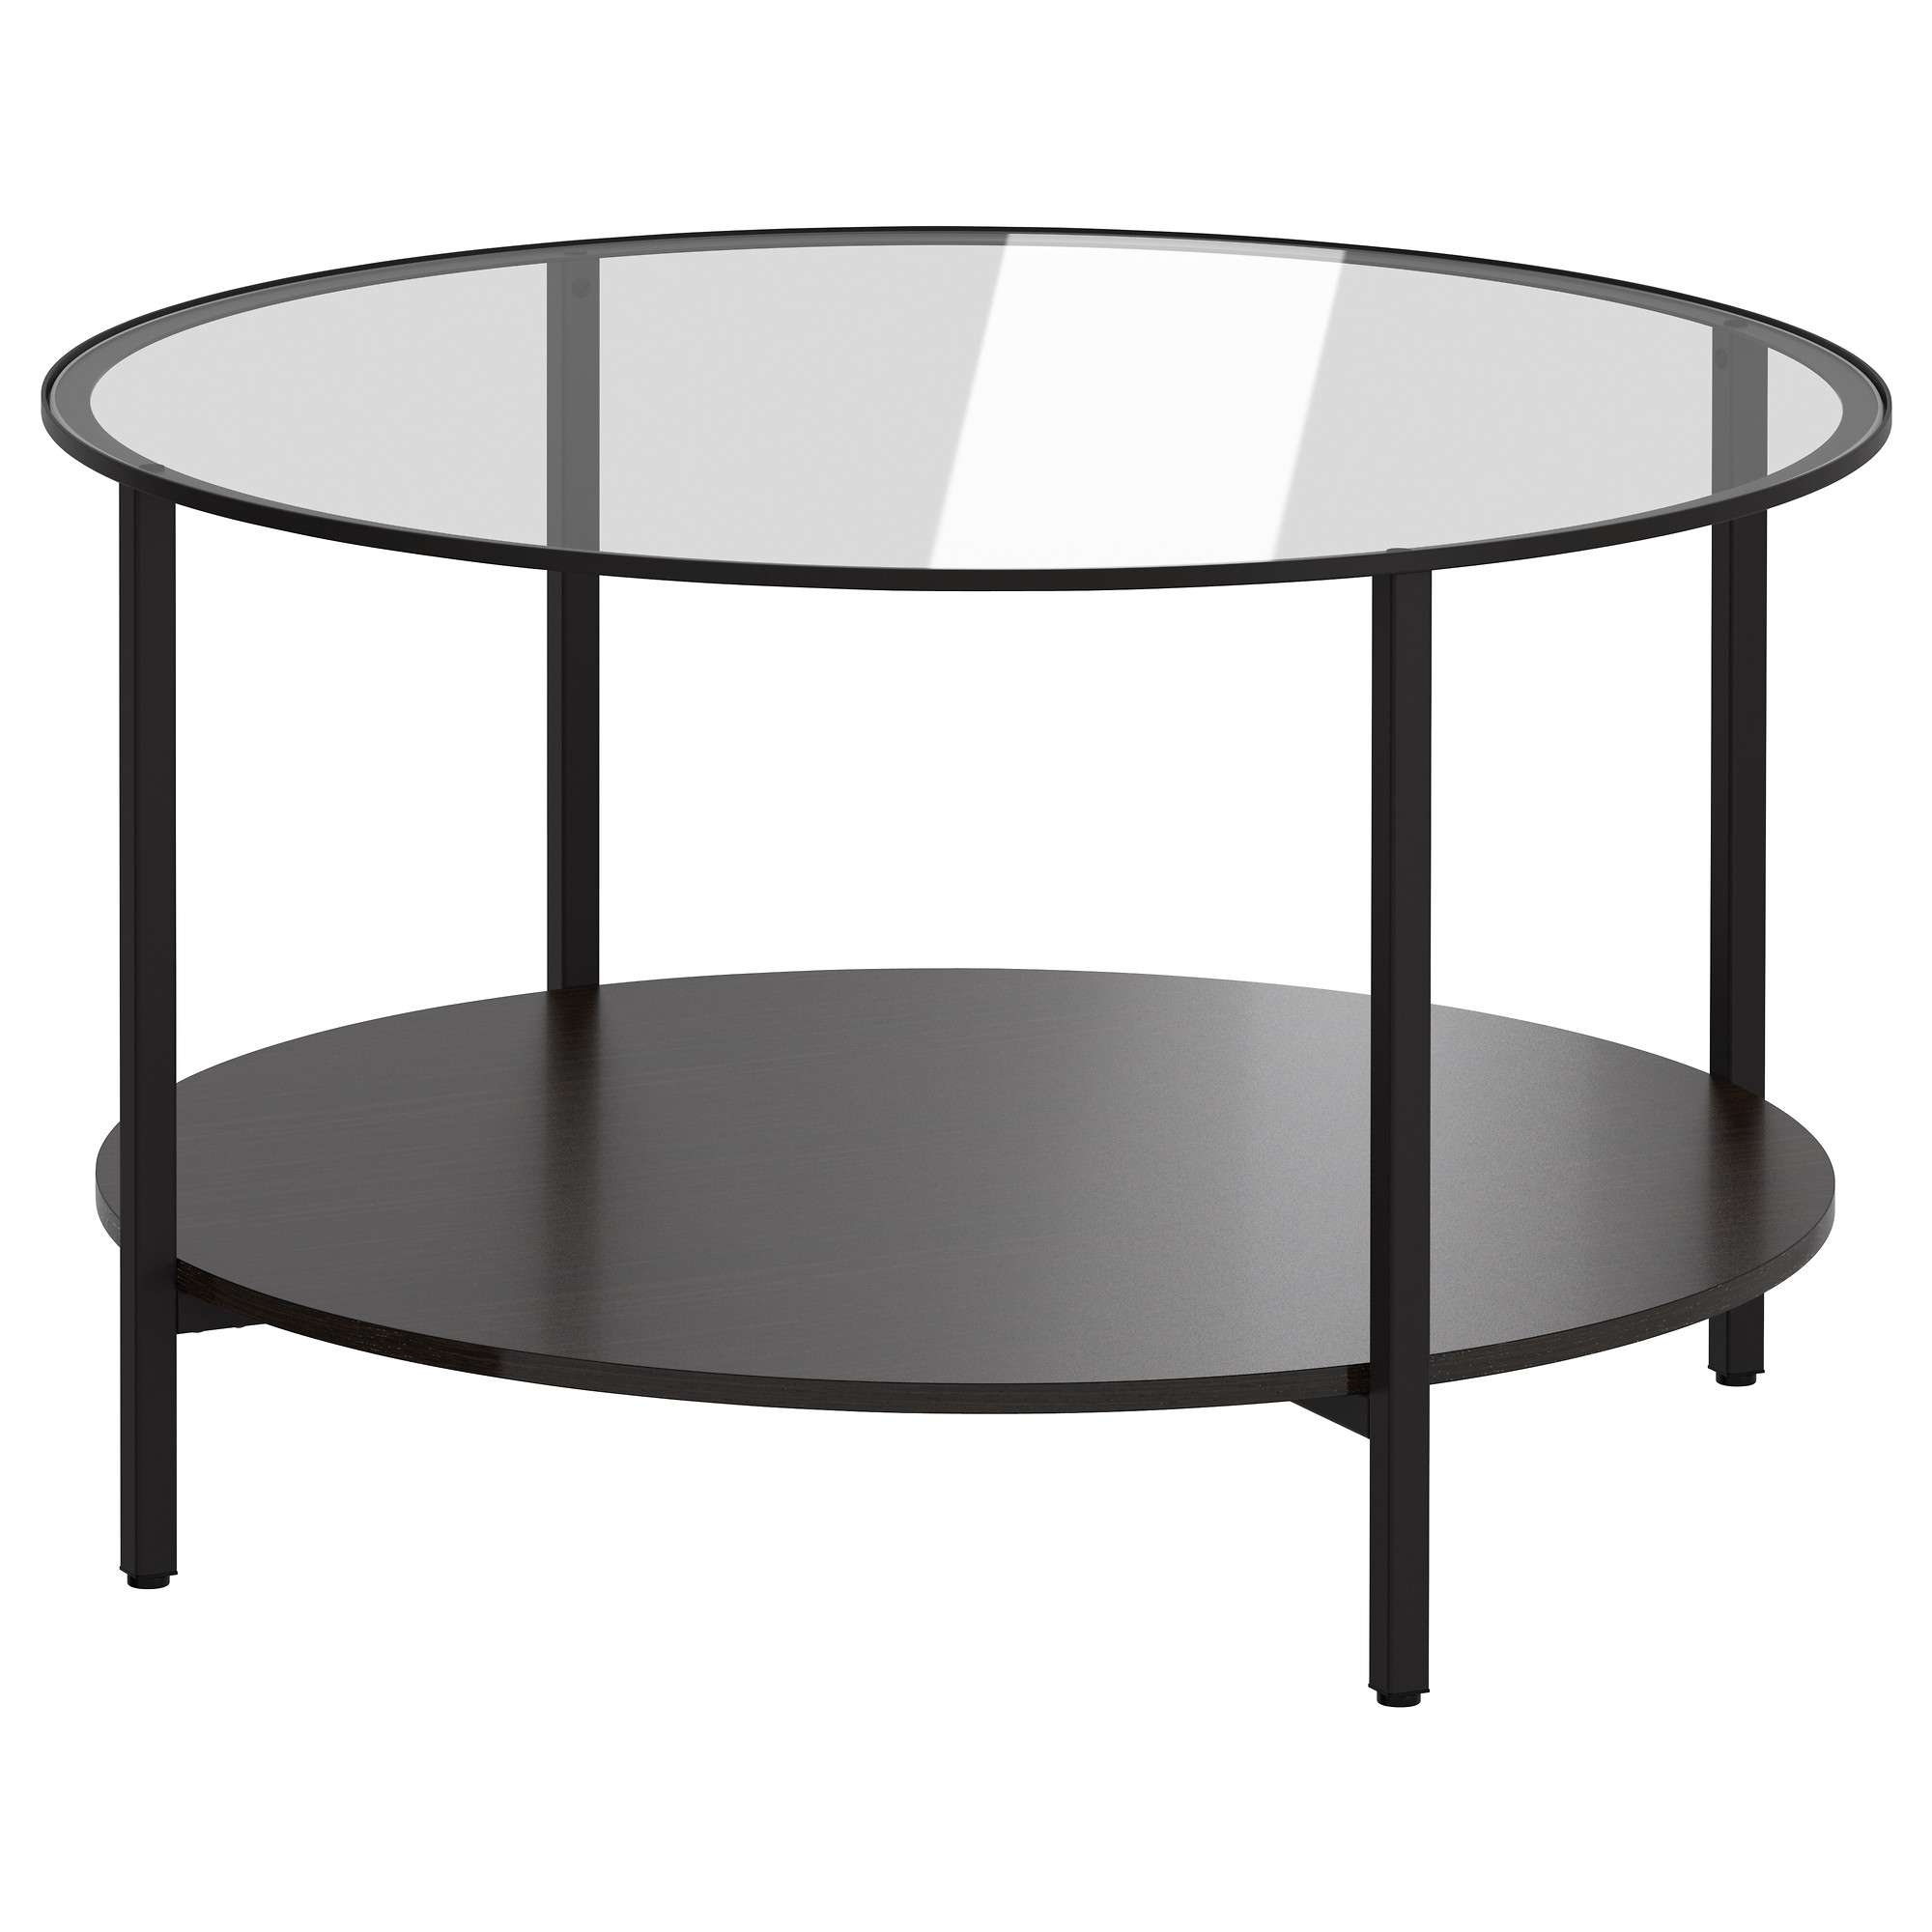 Vittsjö Coffee Table – Black Brown/glass – Ikea Within Most Recently Released Glass Circle Coffee Tables (View 7 of 20)